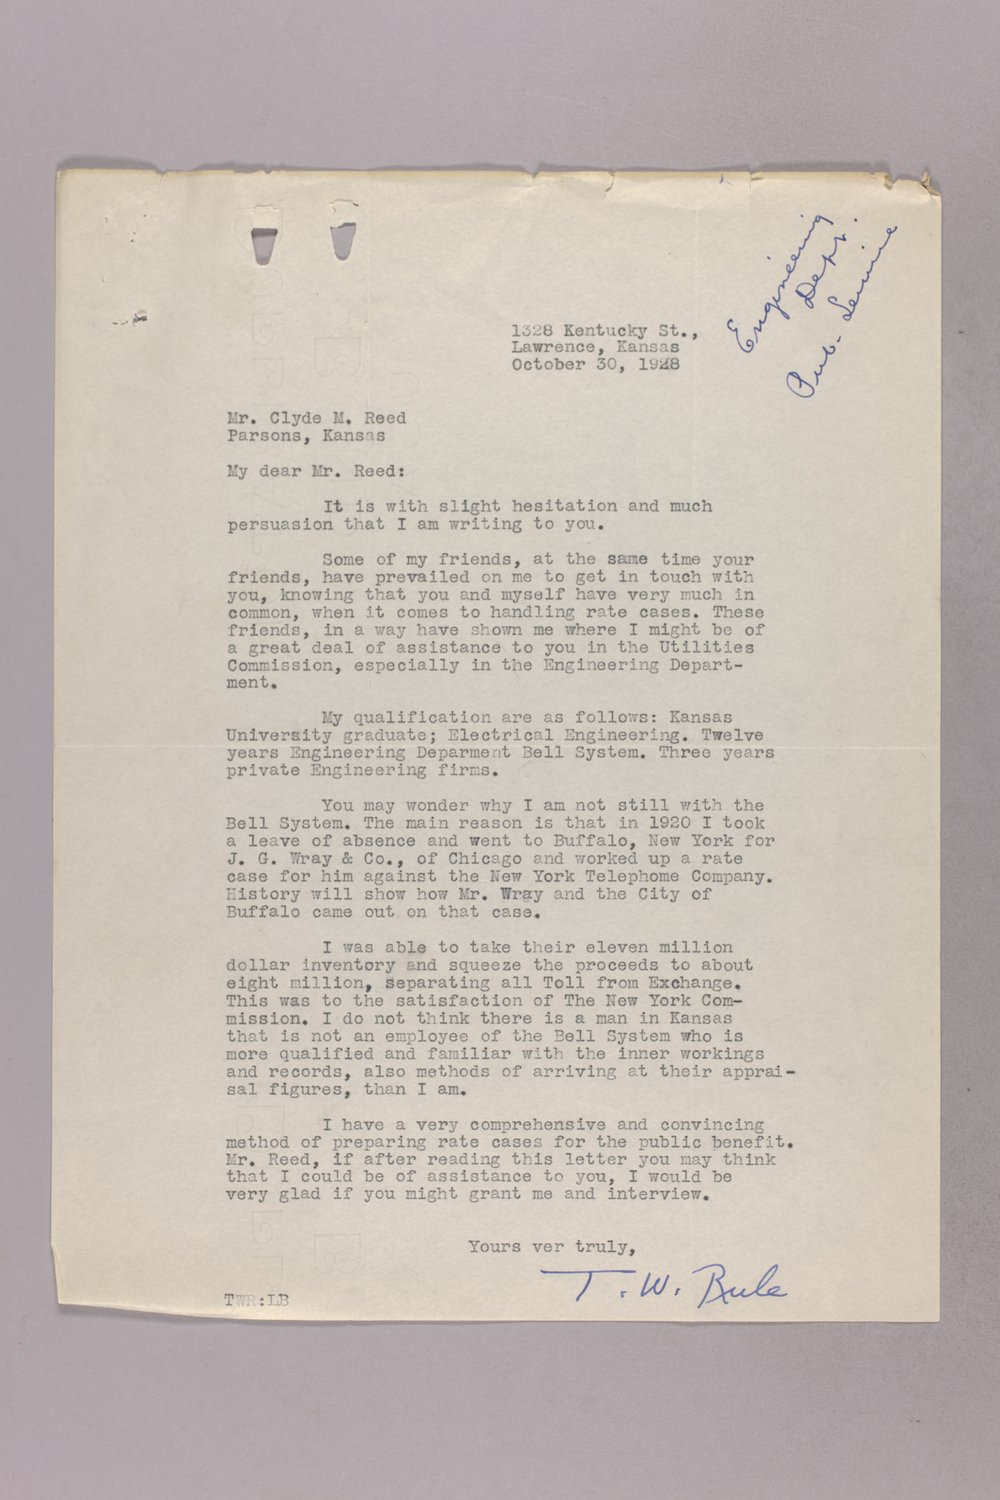 Governor Clyde M. Reed correspondence, Public Service Commission - 10